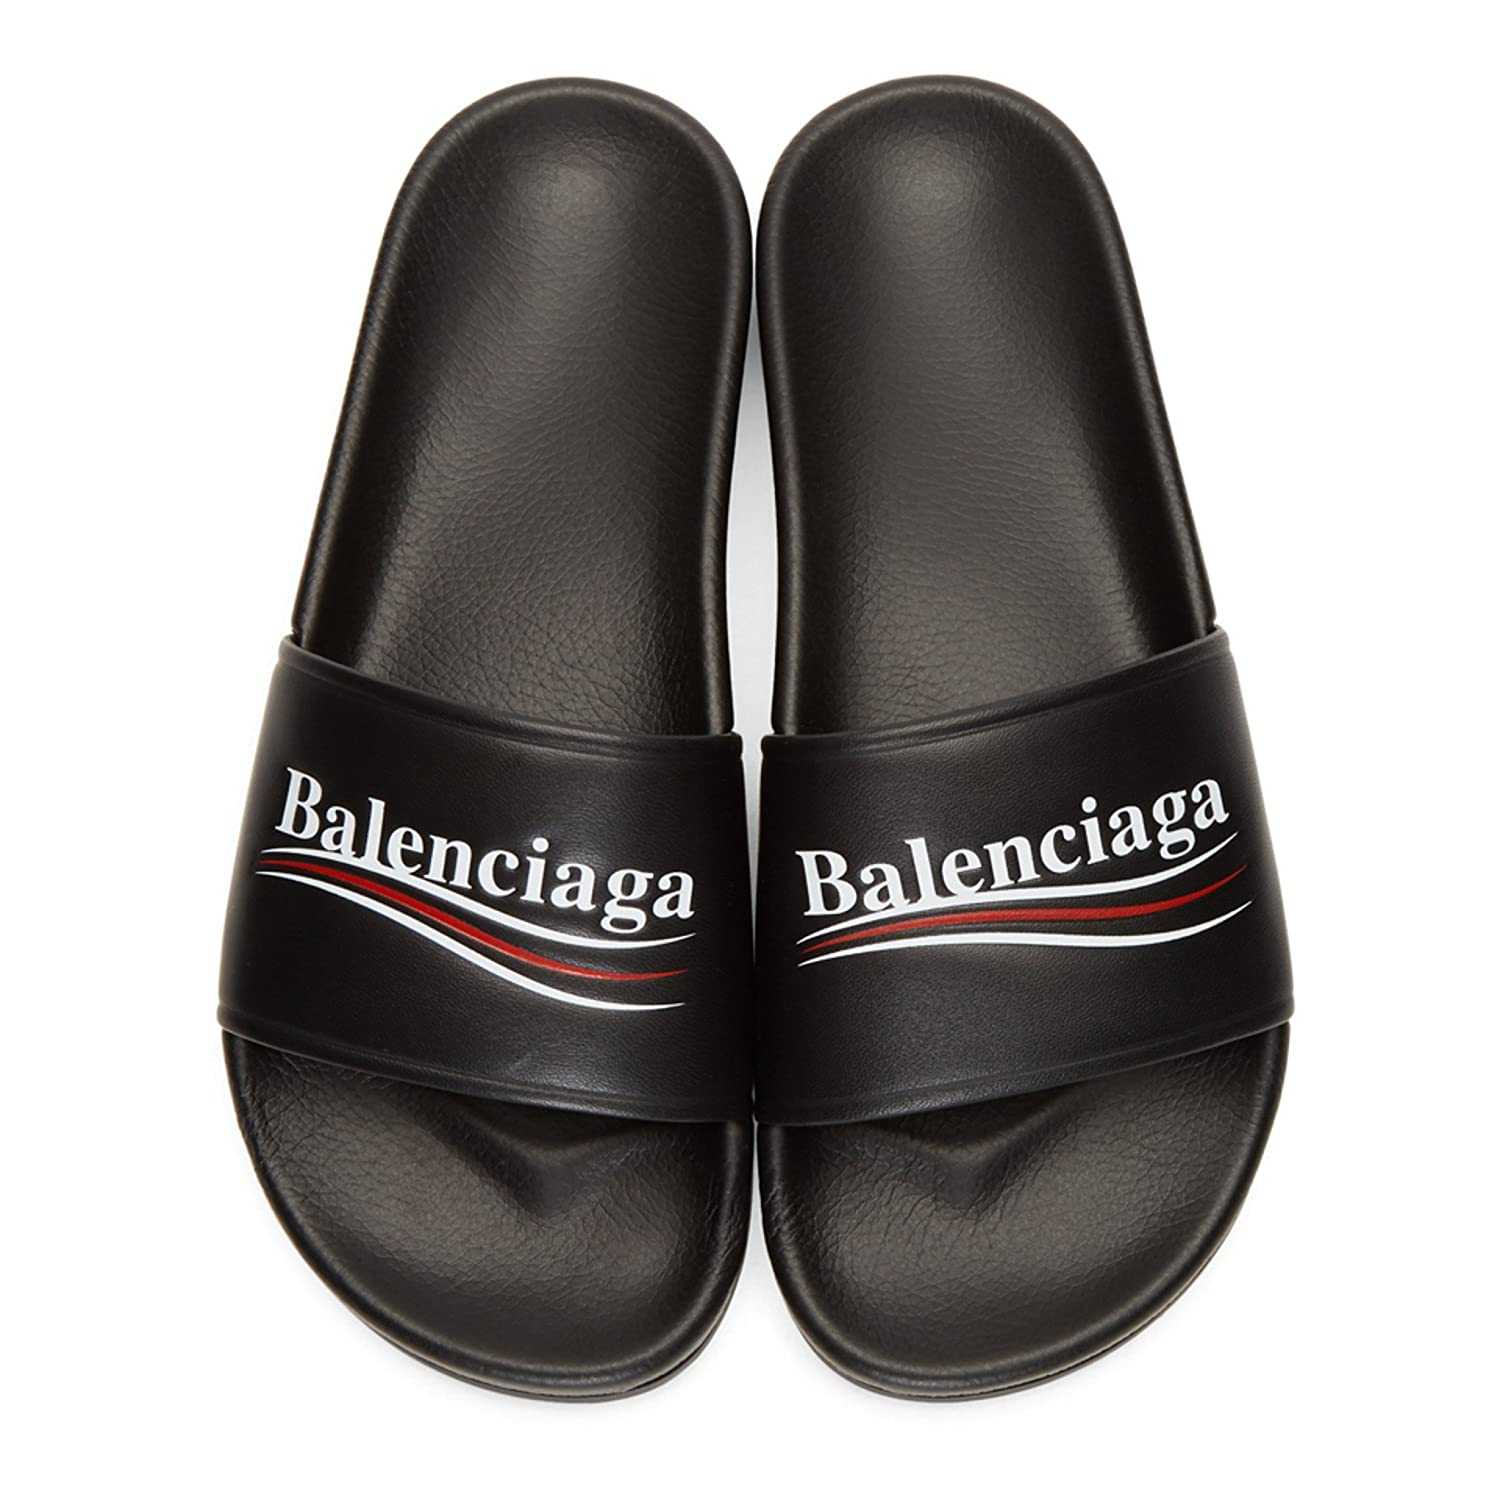 81d7c82f109 TOPSHOD Unisex Mens Womens Balenciaga Sandals Piscine Flat Balenciaga Slide  Leather Logo Black  Amazon.co.uk  Shoes   Bags